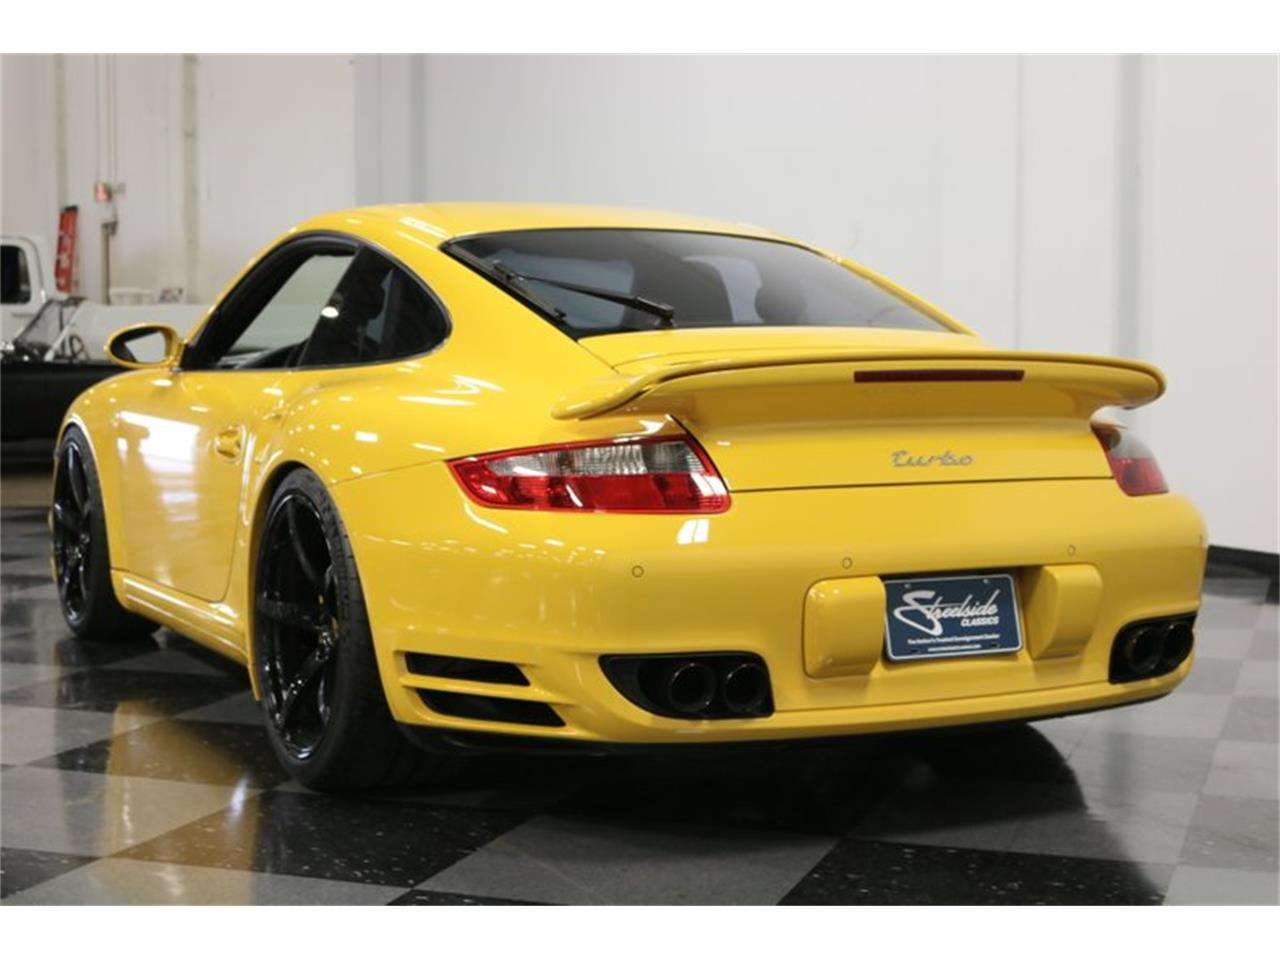 2007 Porsche 911 for sale in Ft Worth, TX – photo 10